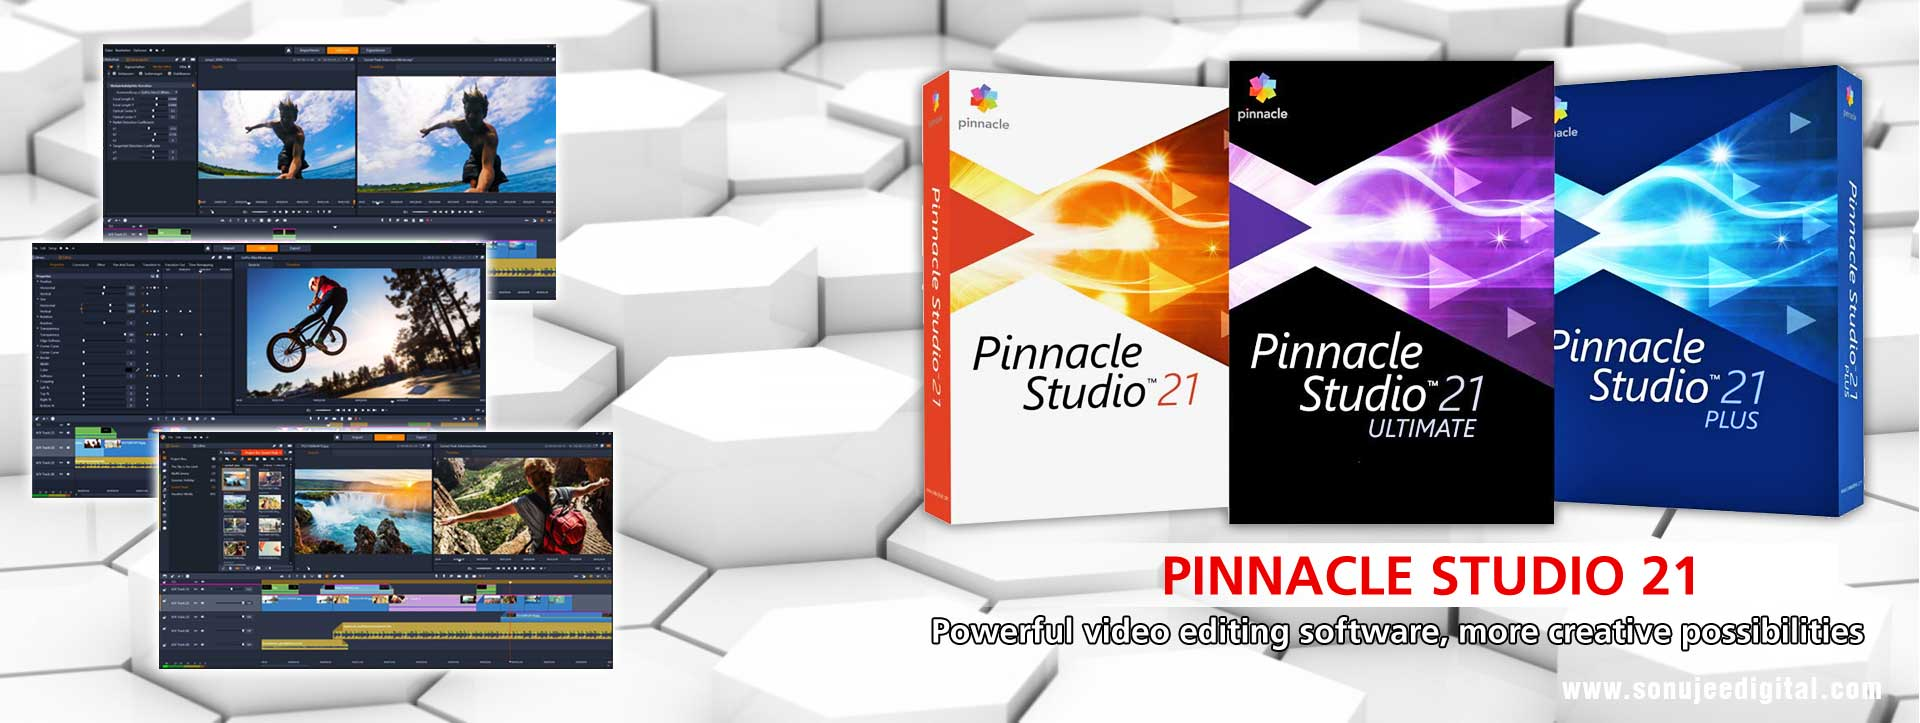 Pinnacle 21 edius 9 grass valley dgflick new wedding for Pinnacle studio templates free download